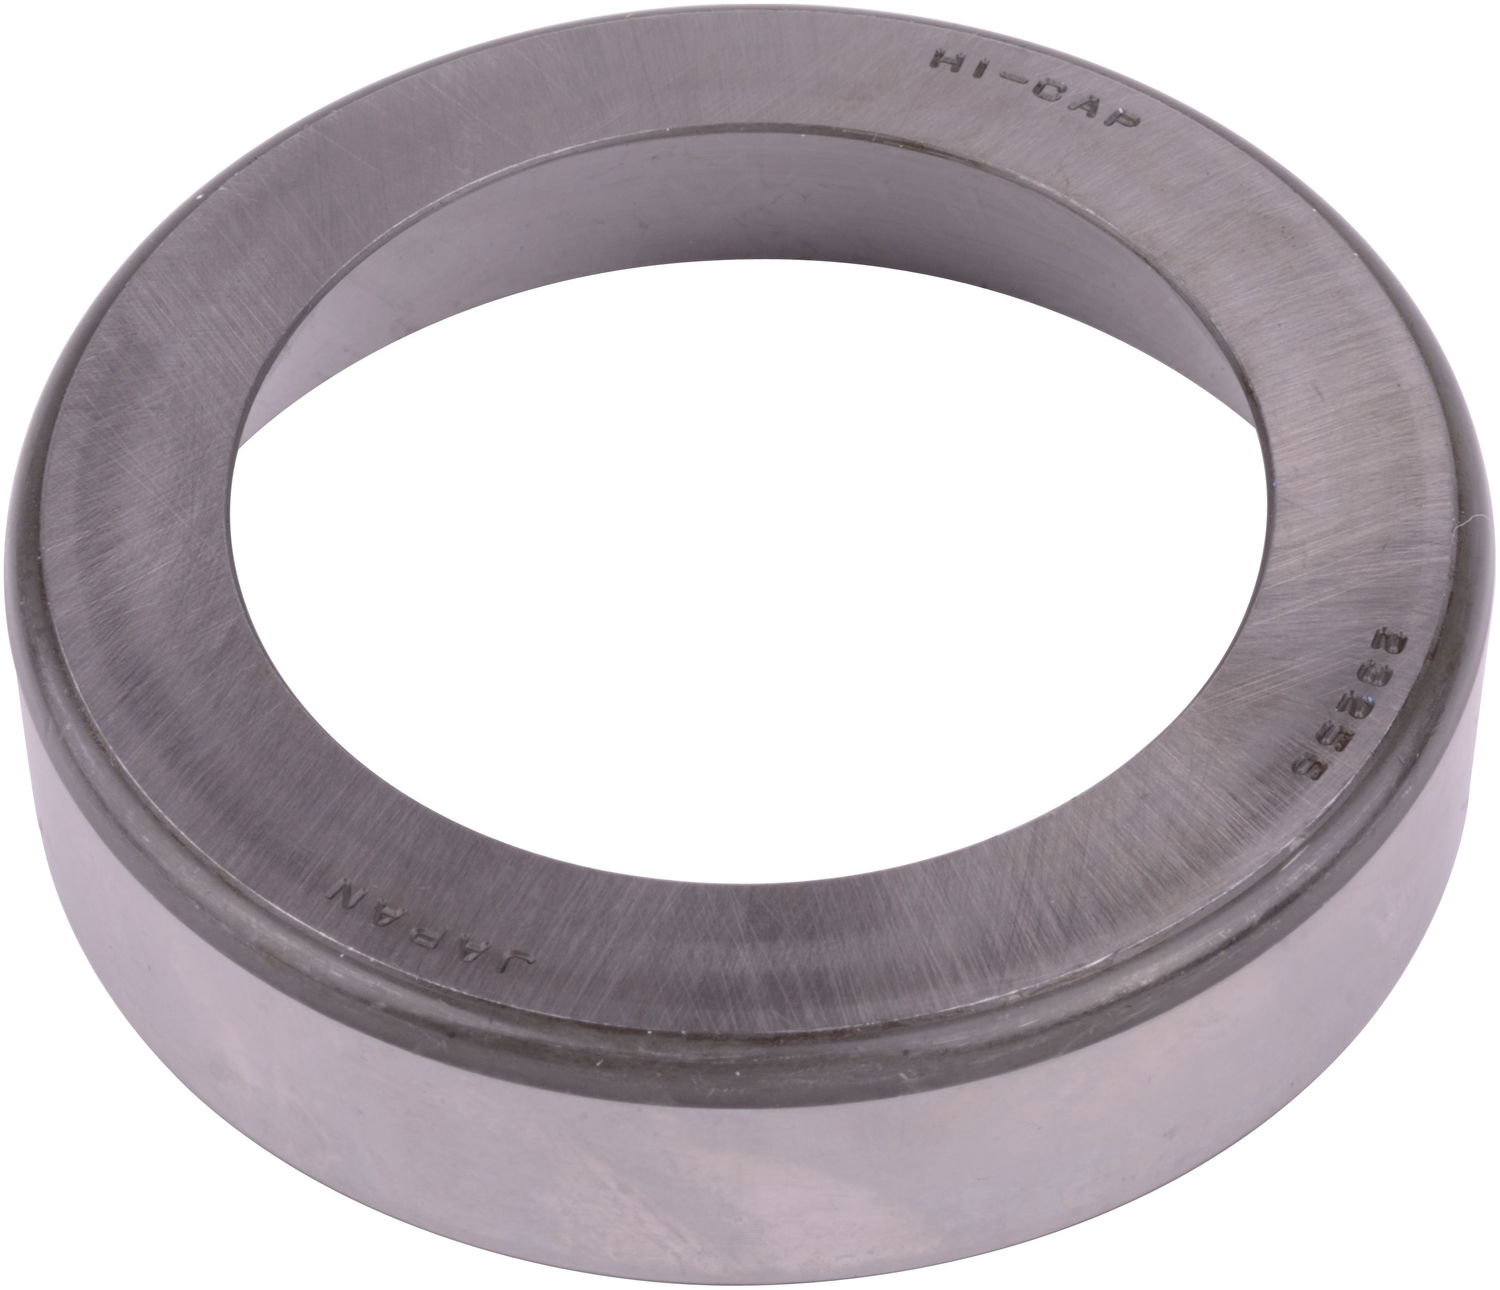 SKF (CHICAGO RAWHIDE) - Steering Knuckle Bearing - SKF BR23256